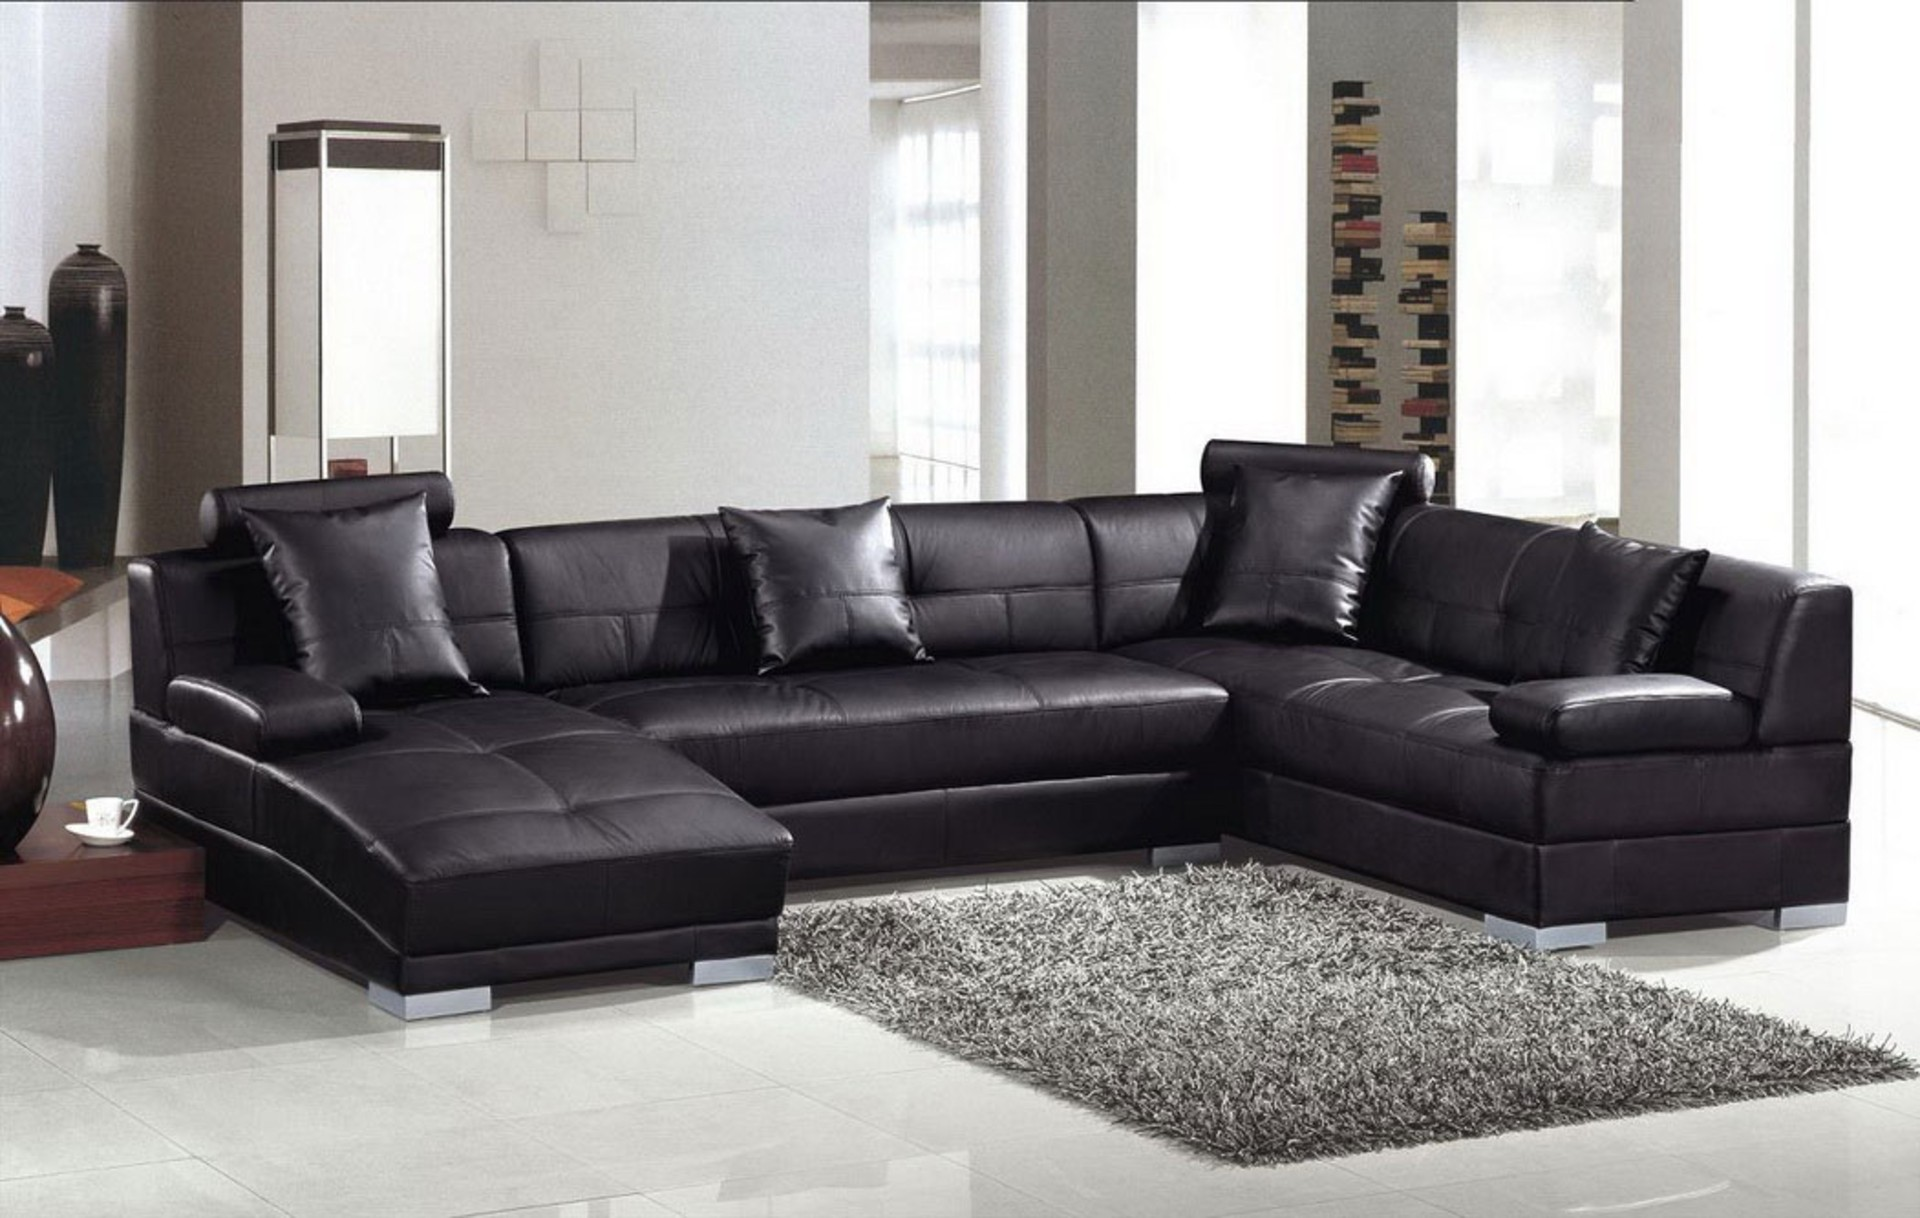 Black Leather Sleeper Sectional Sofa With Cushions And Silver Steel Legs  Placed On The White Floor